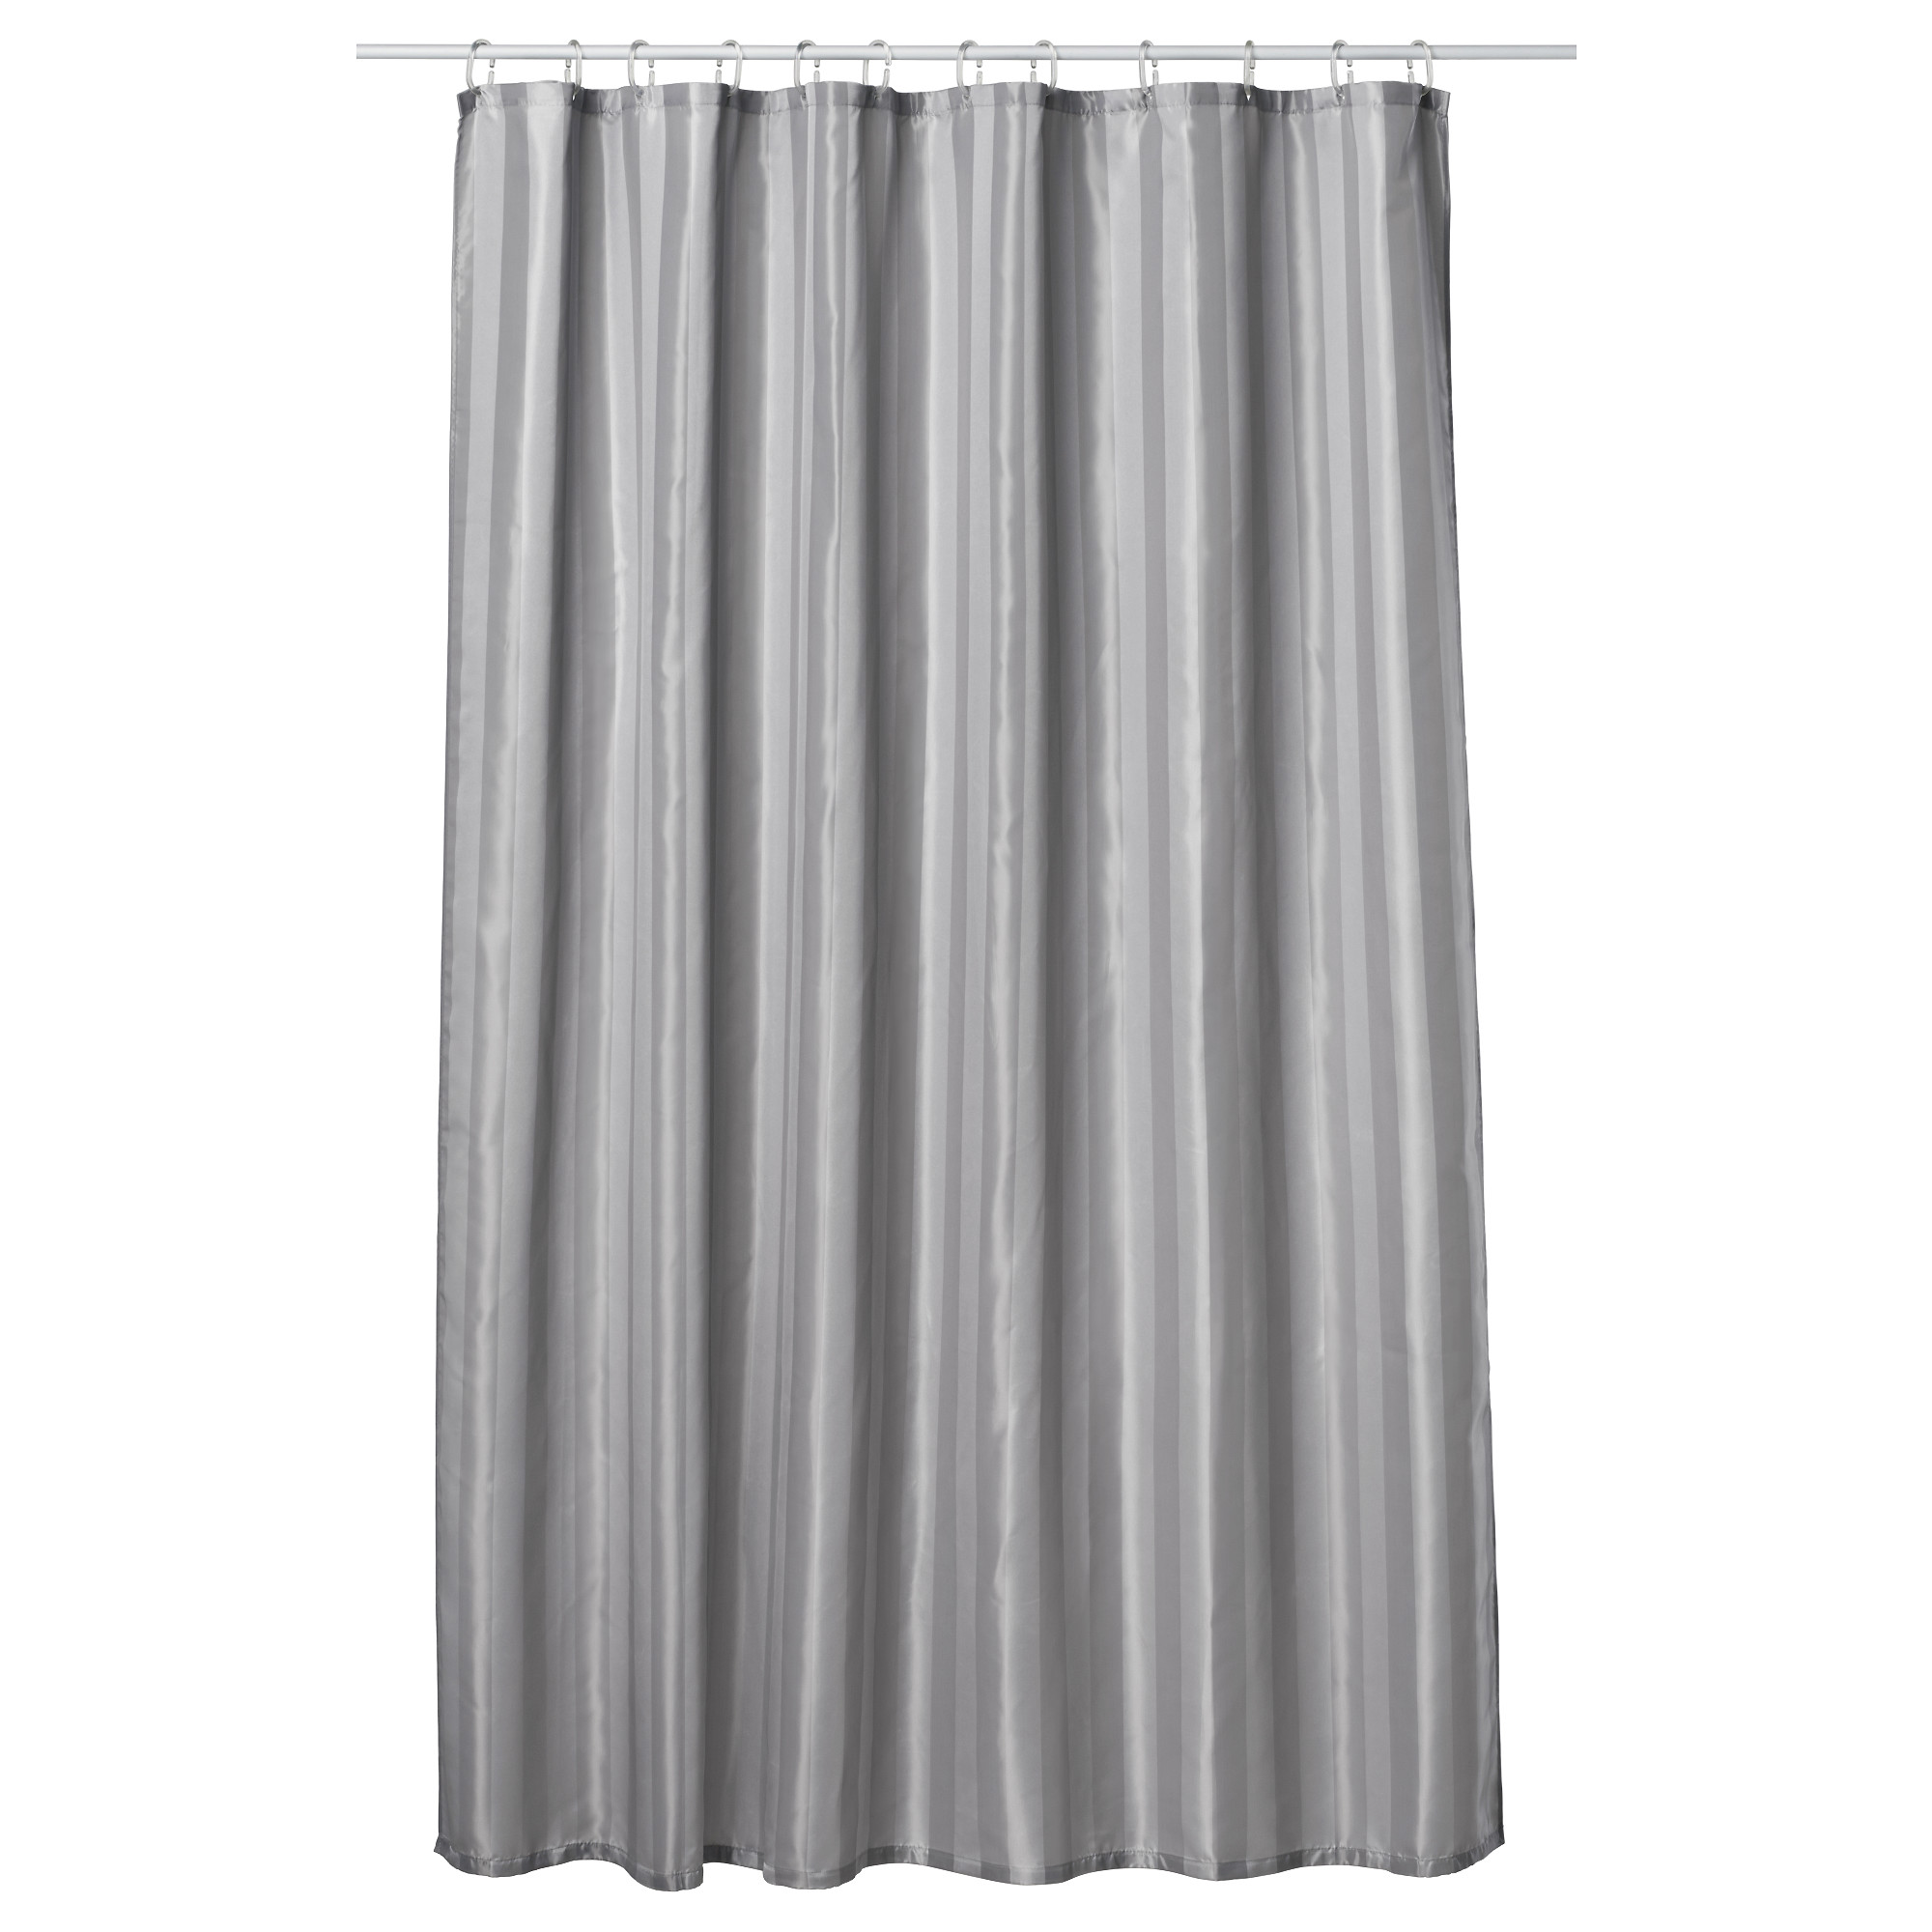 Ikea Shower Curtain for Best Your Bathroom Decoration: Ikea Shower Curtain | Grey And White Shower Curtains | Boys Shower Curtains